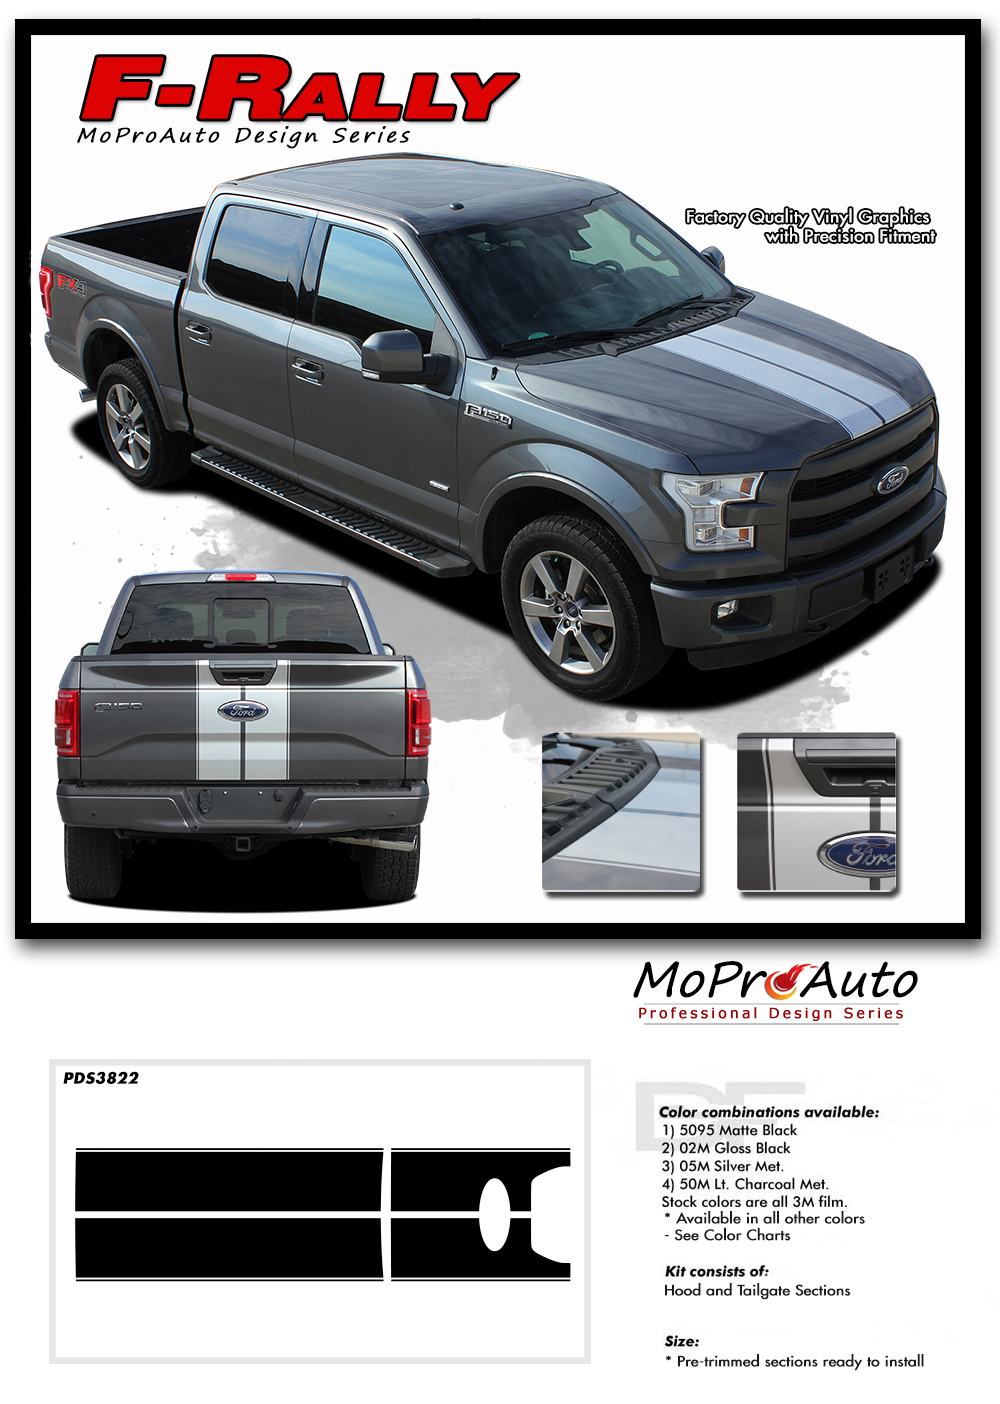 Ford F-Series F-150 F-RALLY - MoProAuto Pro Design Series Vinyl Graphics and Decals Kit